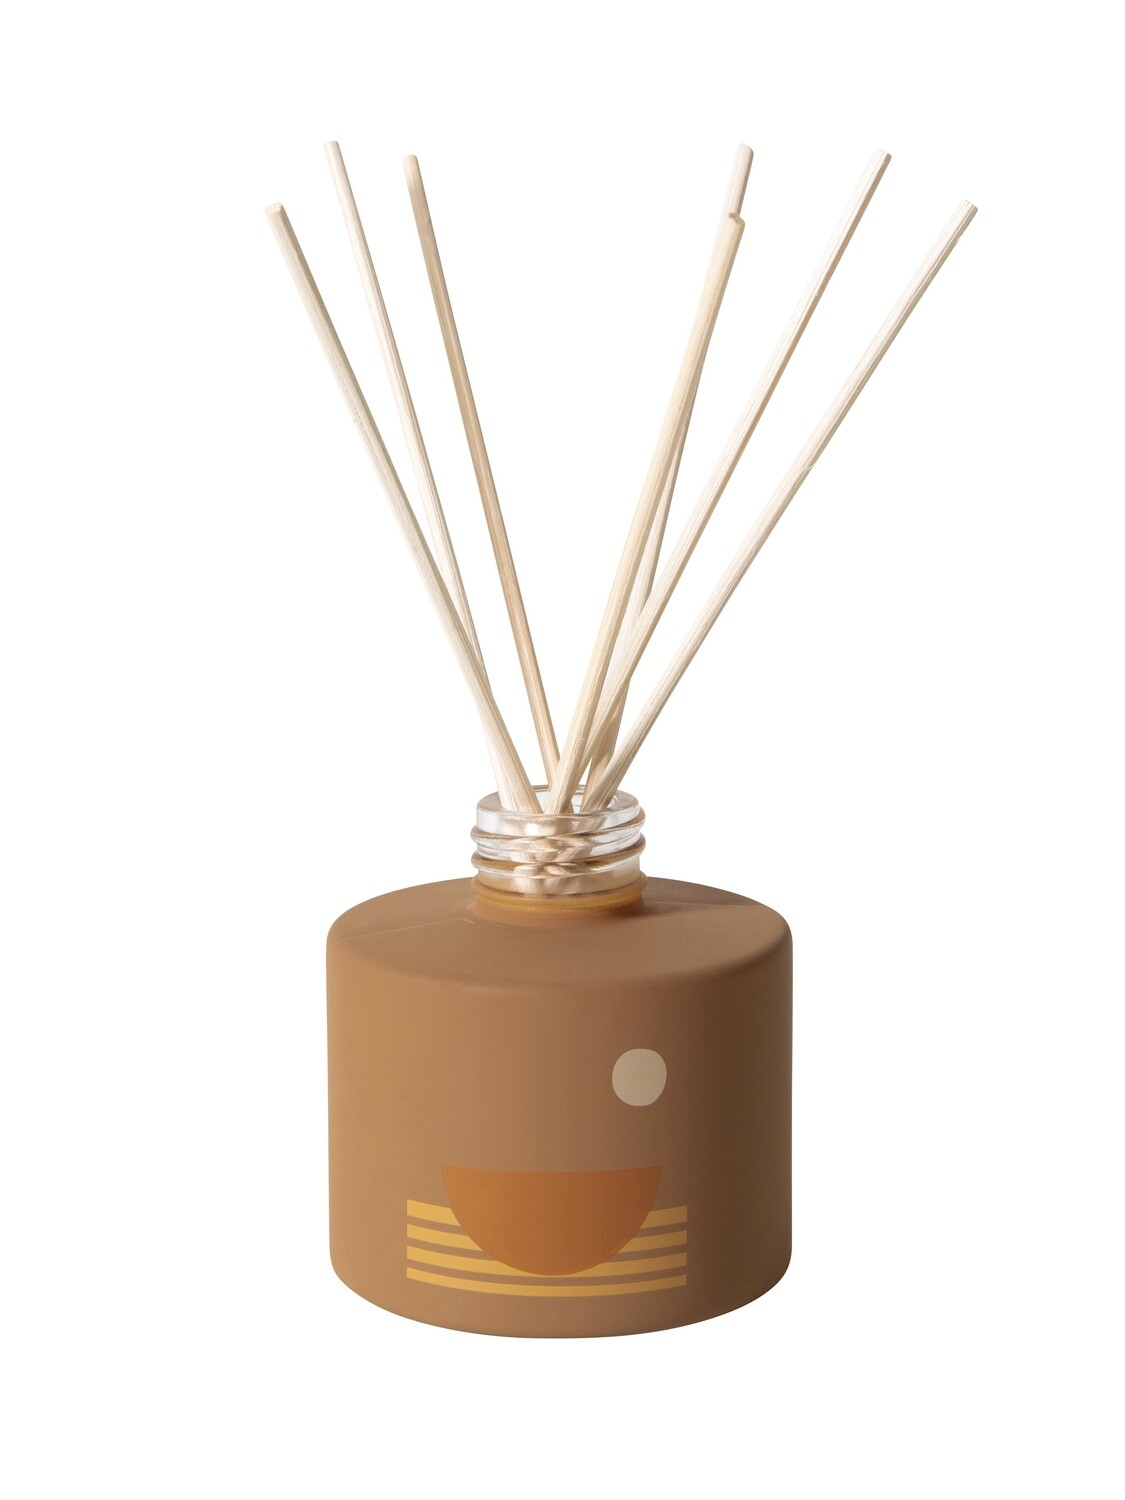 Swell Sunset Reed Diffuser - 3.75 oz